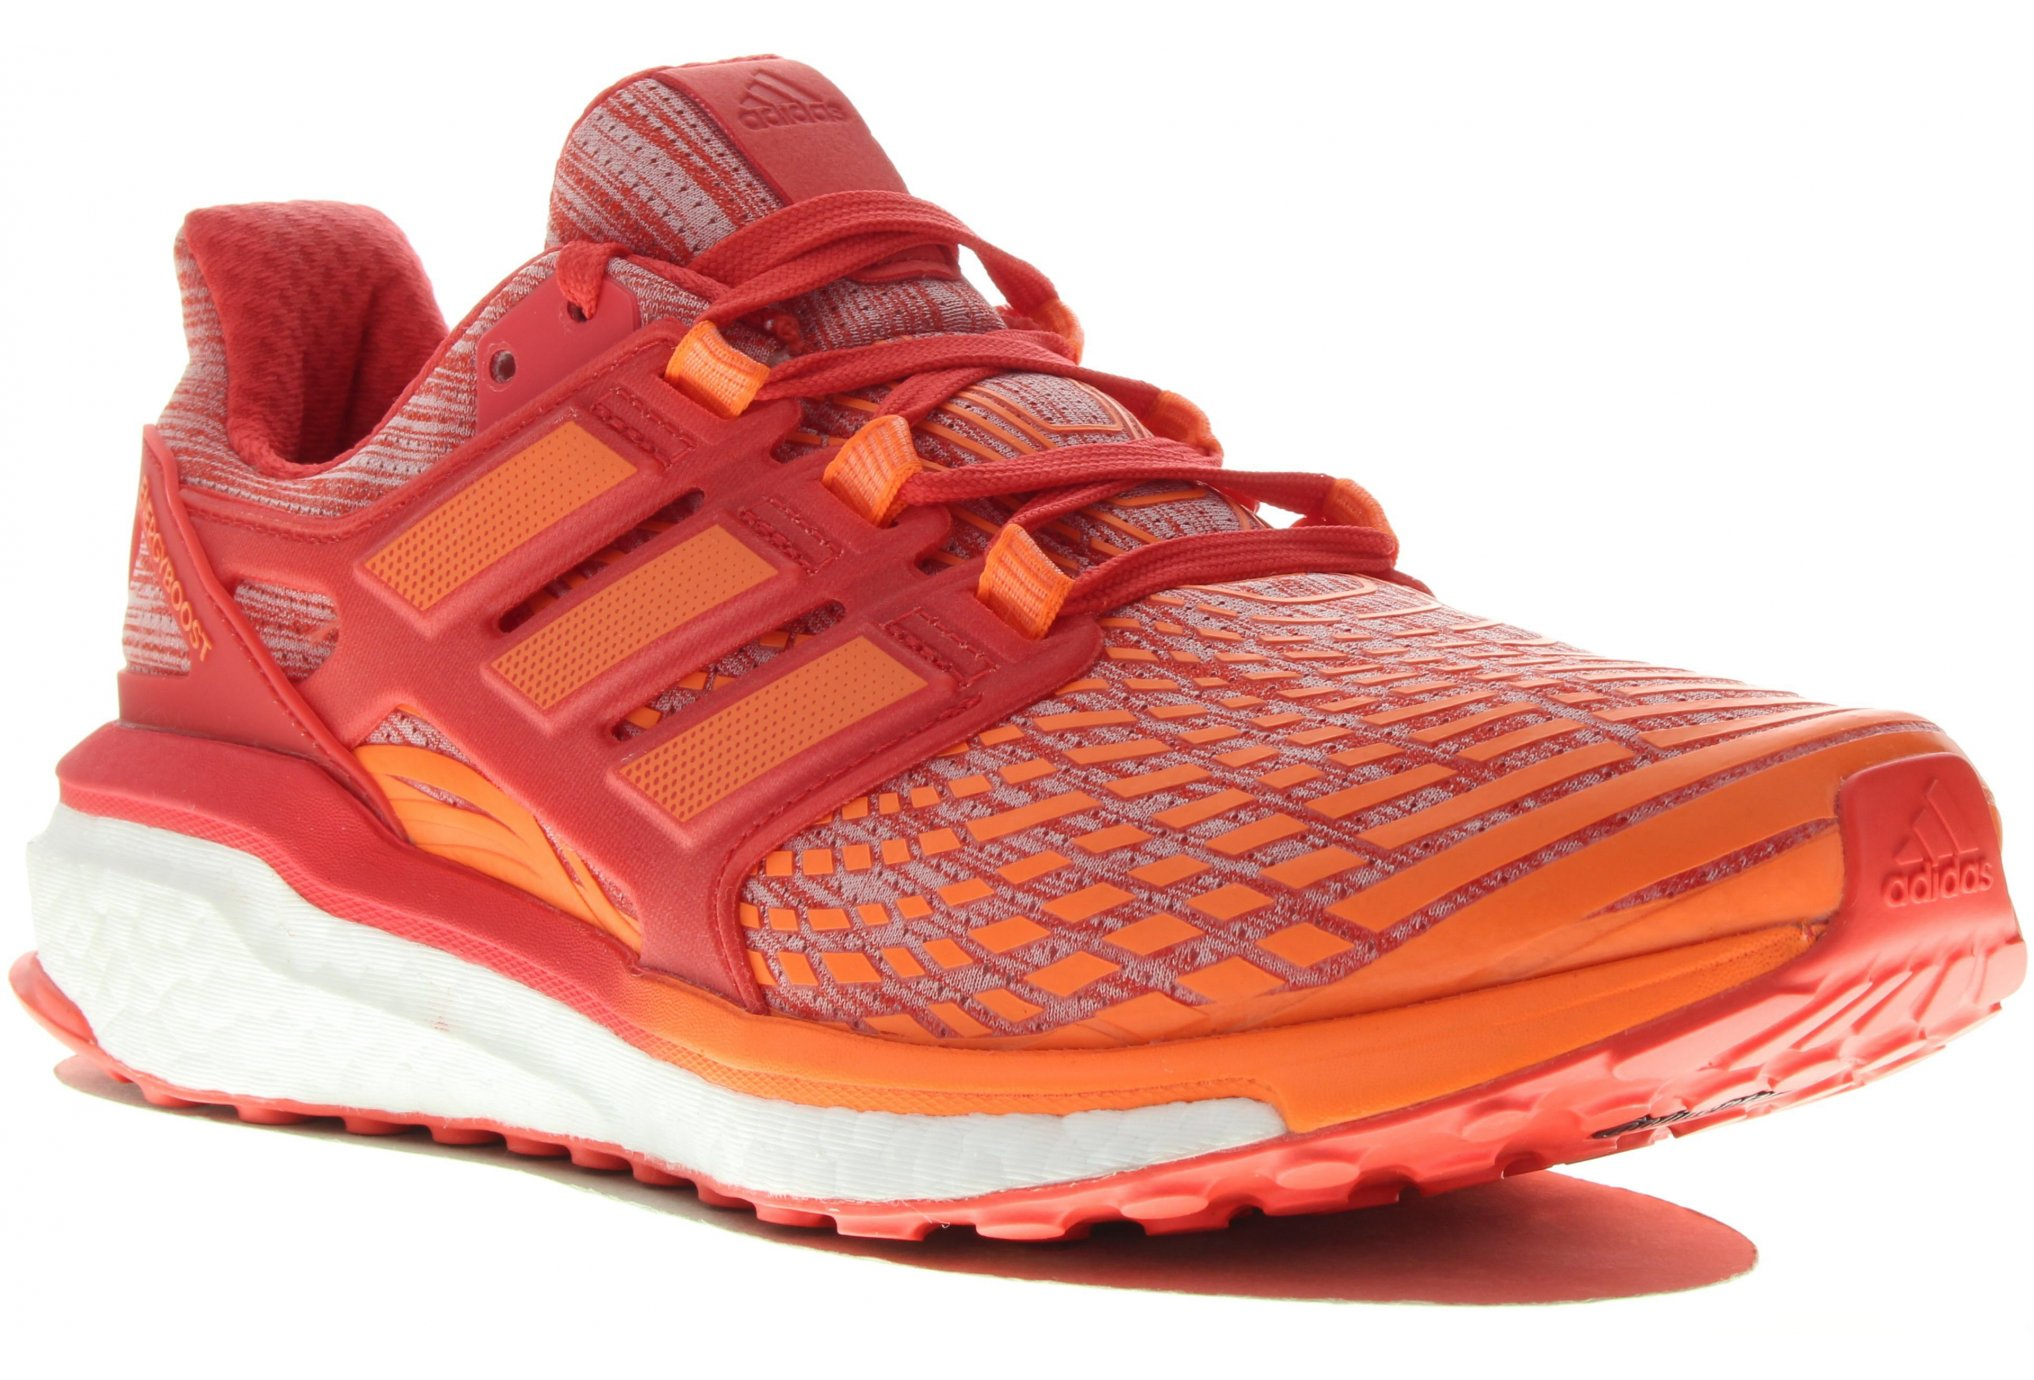 Adidas Energy boost w chaussures running femme